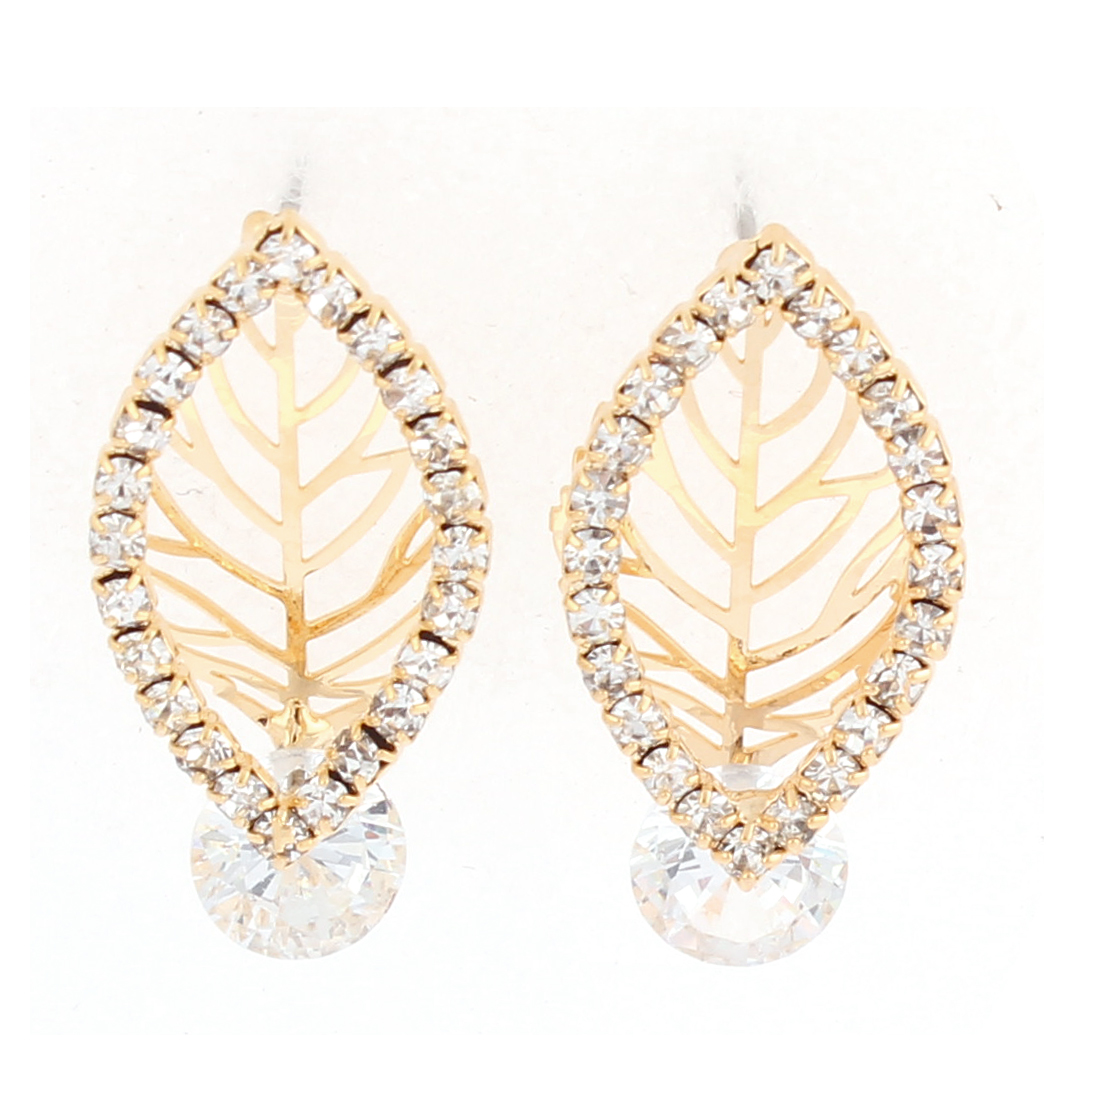 Faux Rhinestone Detail Hollow Leaf Pendant Stud Earrings Ear Pins Nails Gold Tone Pair